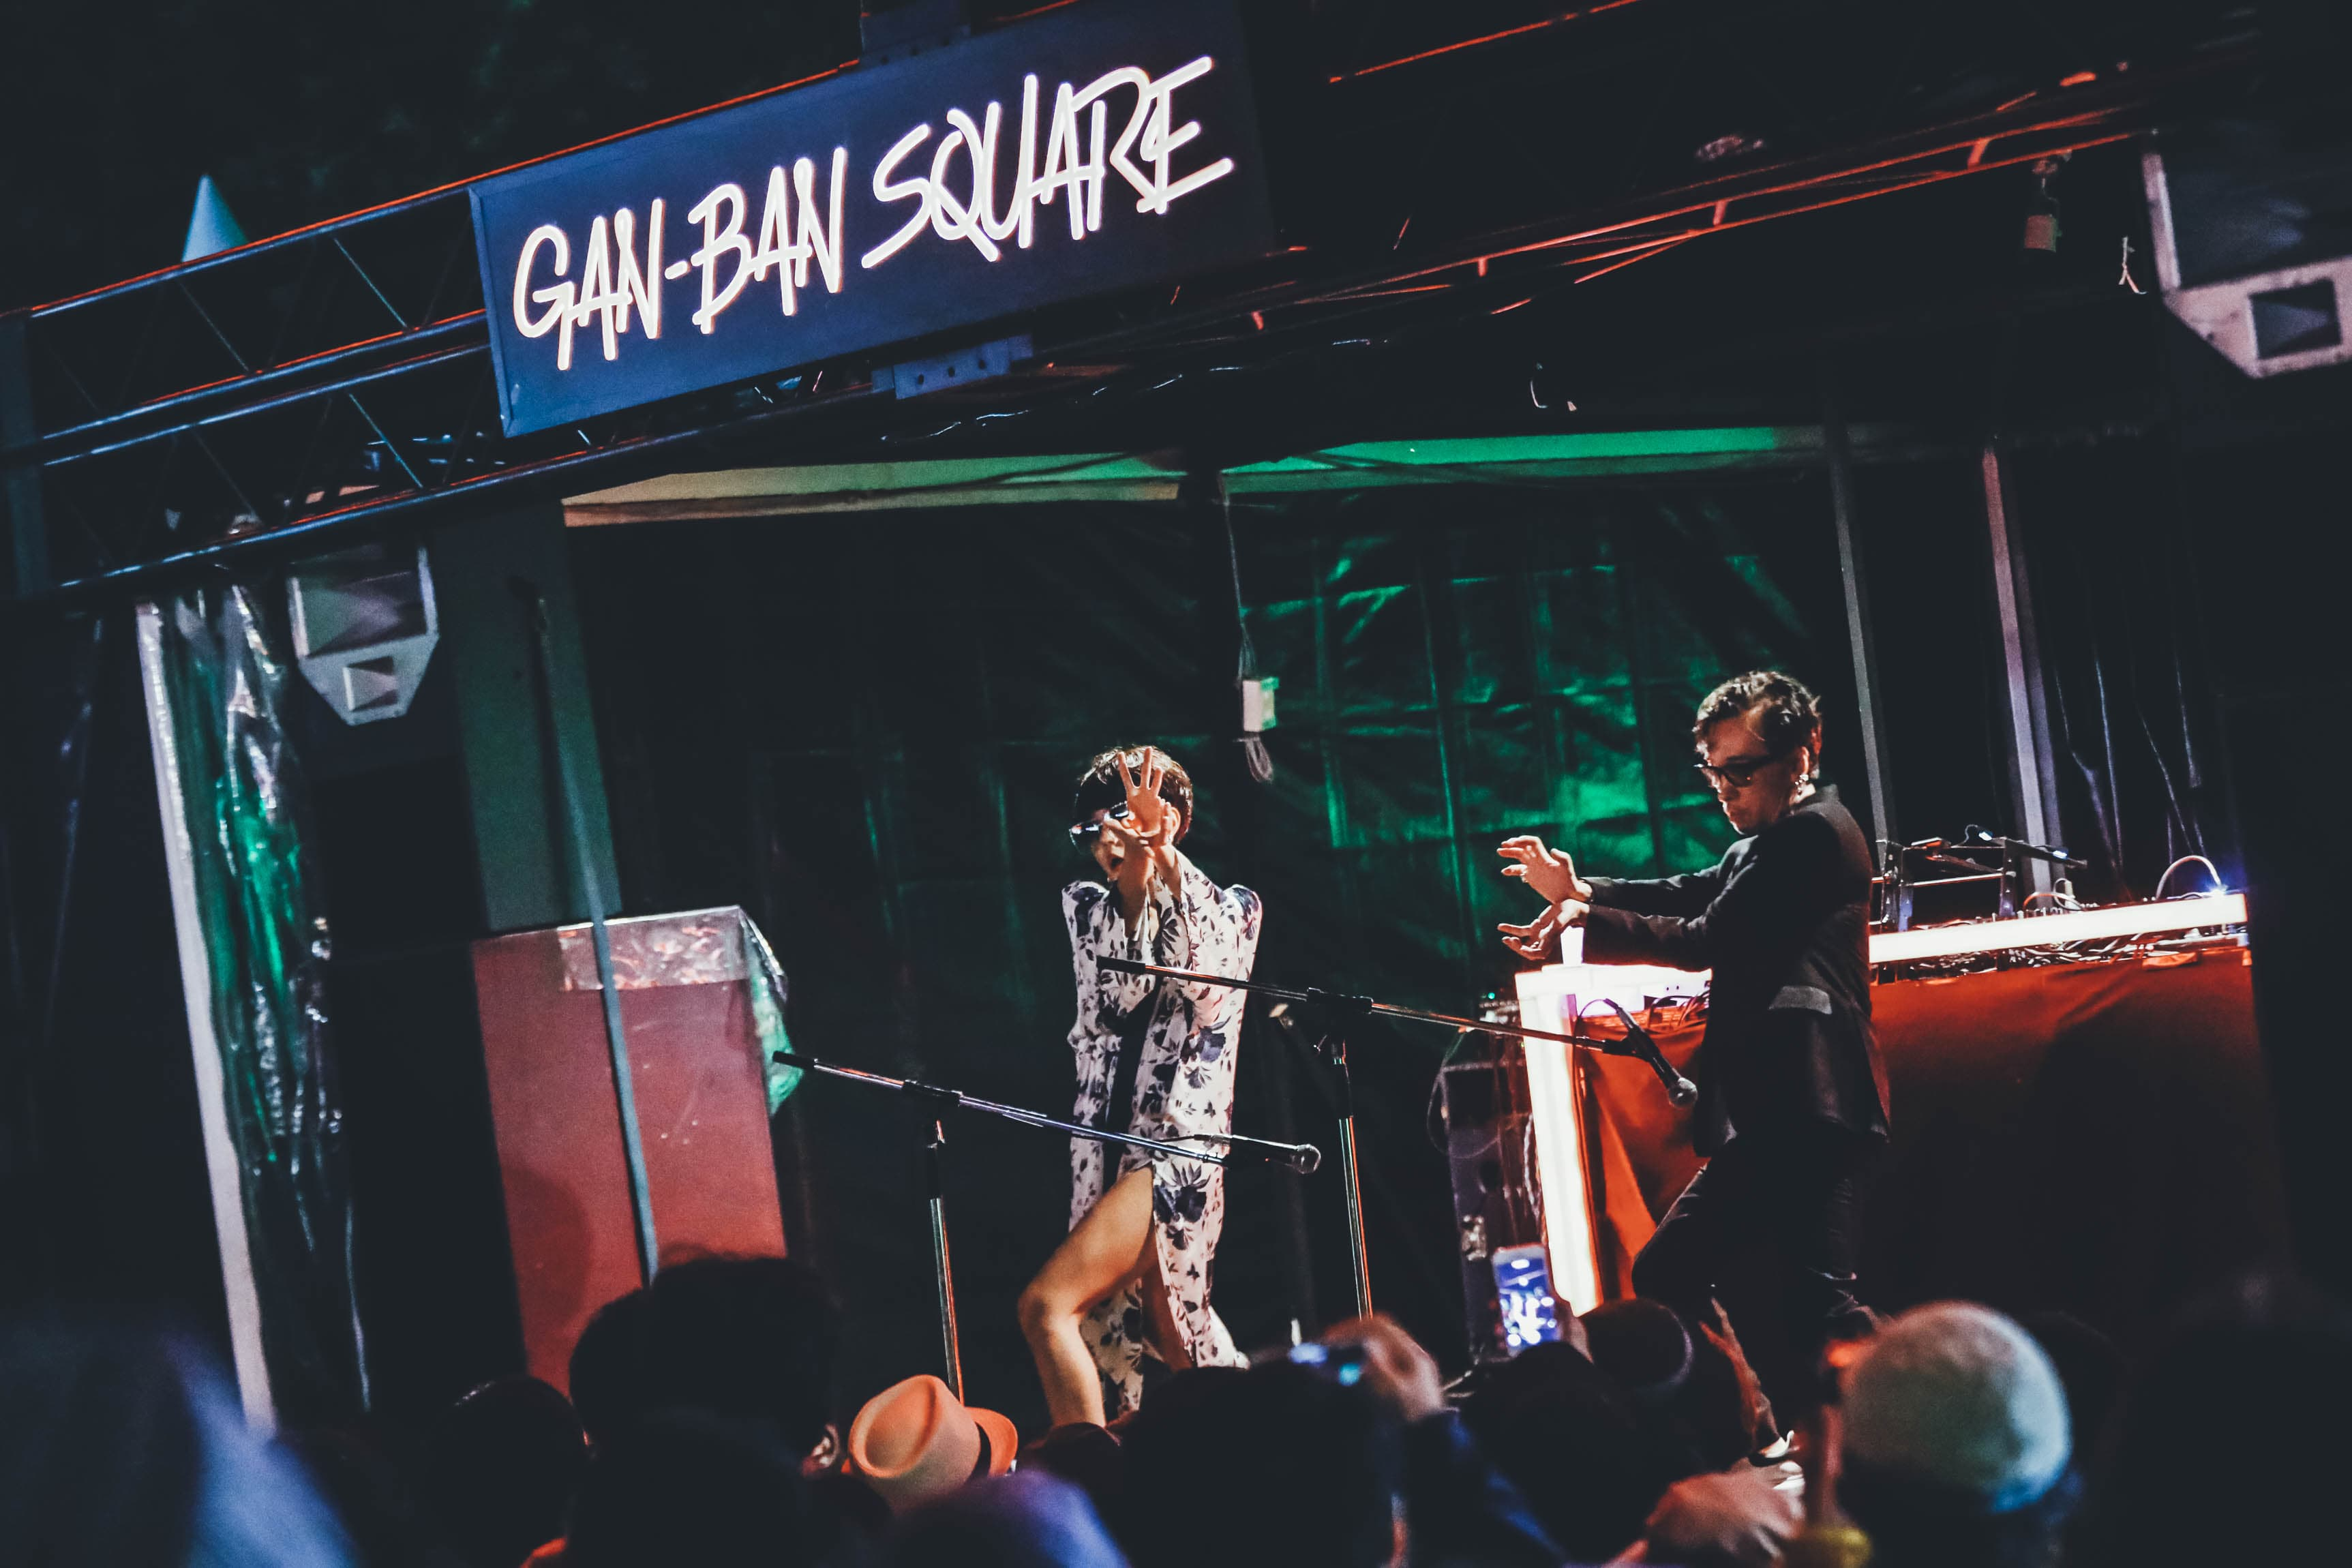 gbpg_day3-12 FRF'18 GAN-BAN SQUARE PHOTO GALLERY #fujirock